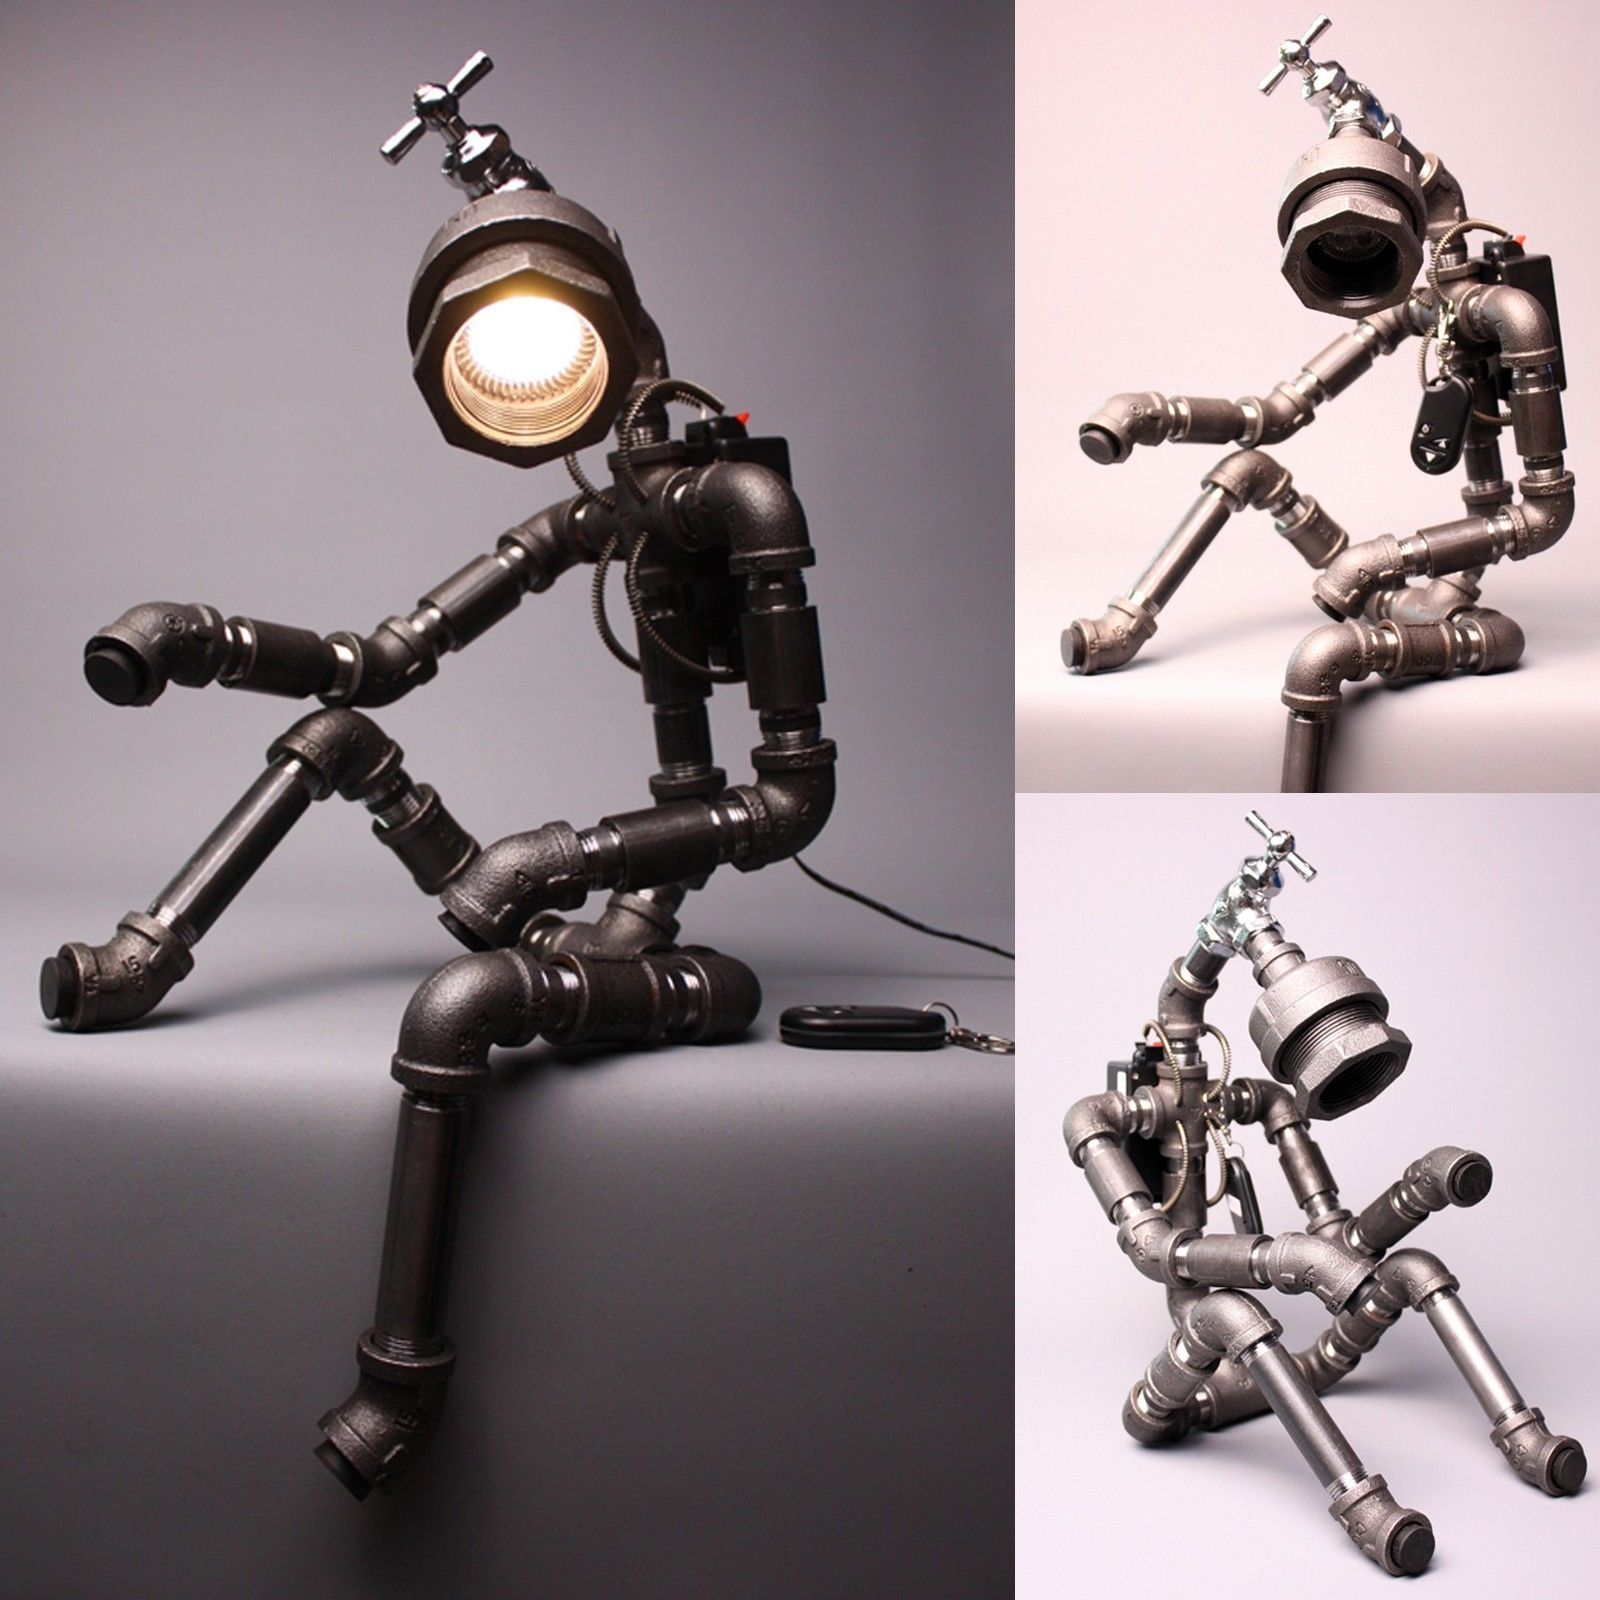 vladru photo and depositphotos abstract robot idea stock lamp